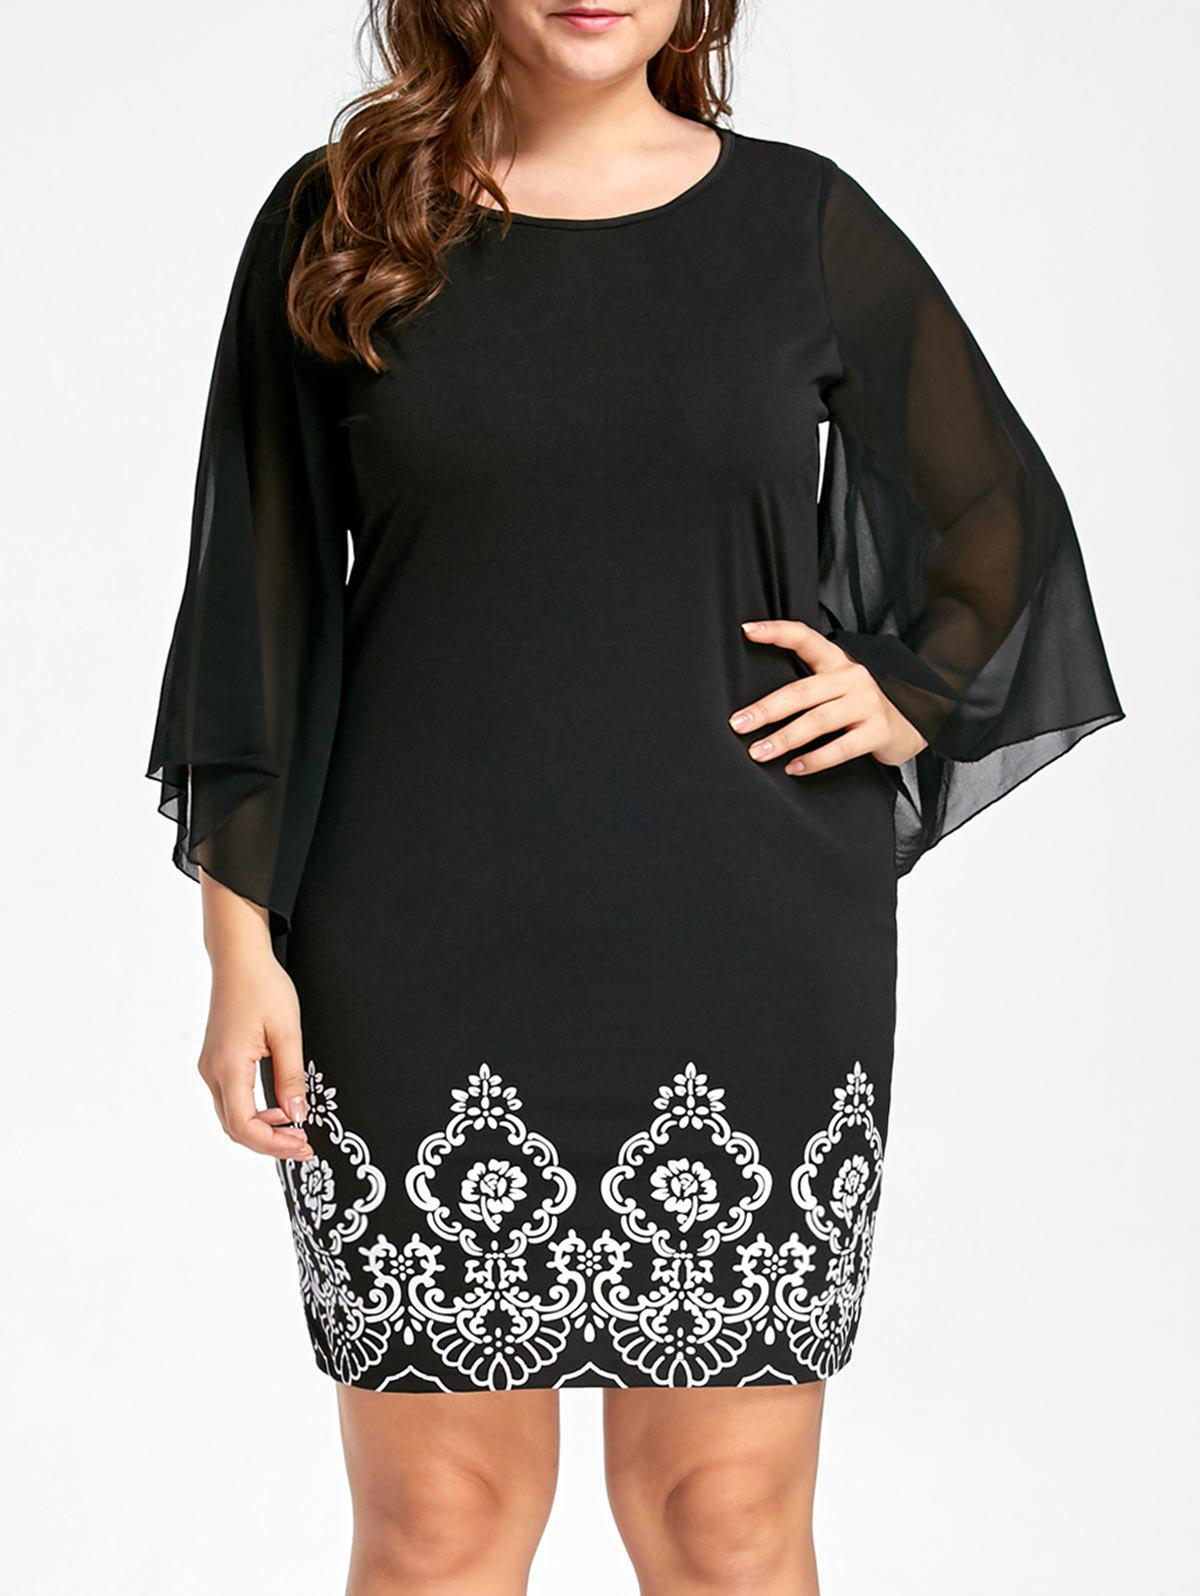 Plus Size Flare Sleeve Sheath DressWOMEN<br><br>Size: 3XL; Color: BLACK; Style: Brief; Material: Polyester,Spandex; Silhouette: Sheath; Dresses Length: Knee-Length; Neckline: Round Collar; Sleeve Type: Flare Sleeve; Sleeve Length: 3/4 Length Sleeves; Pattern Type: Print; With Belt: No; Season: Fall,Spring,Summer; Weight: 0.3300kg; Package Contents: 1 x Dress;